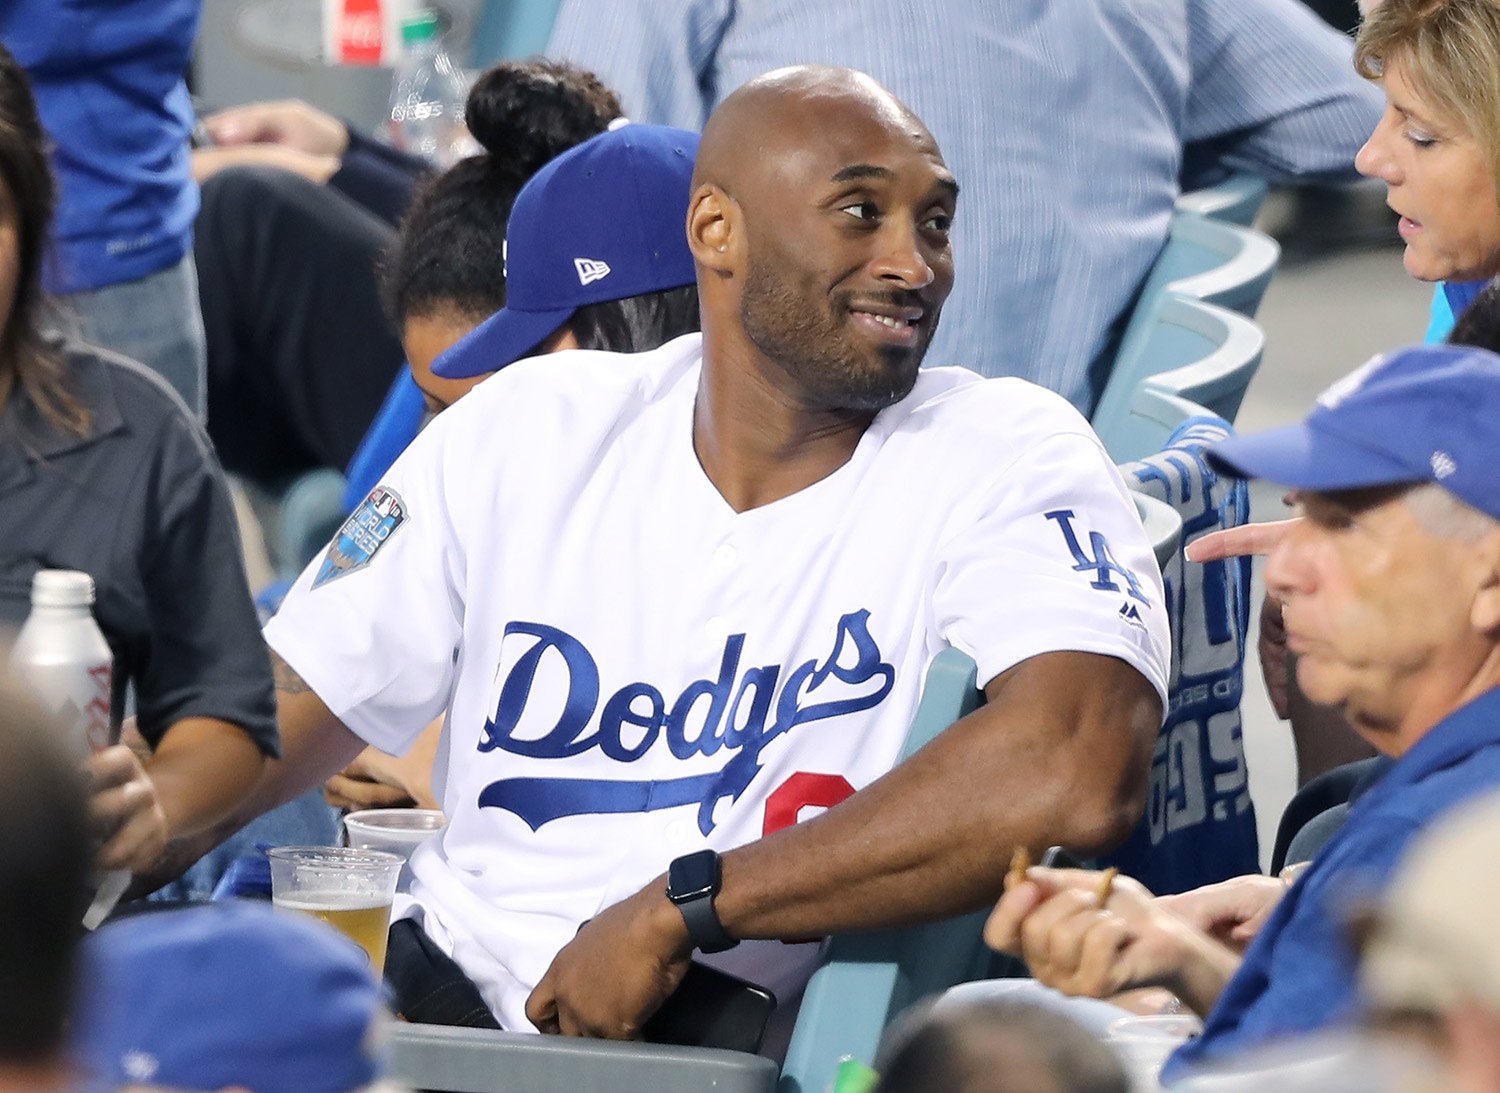 Dodgers Pay Tribute to Kobe Bryant on His 42nd Birthday | PEOPLE.com